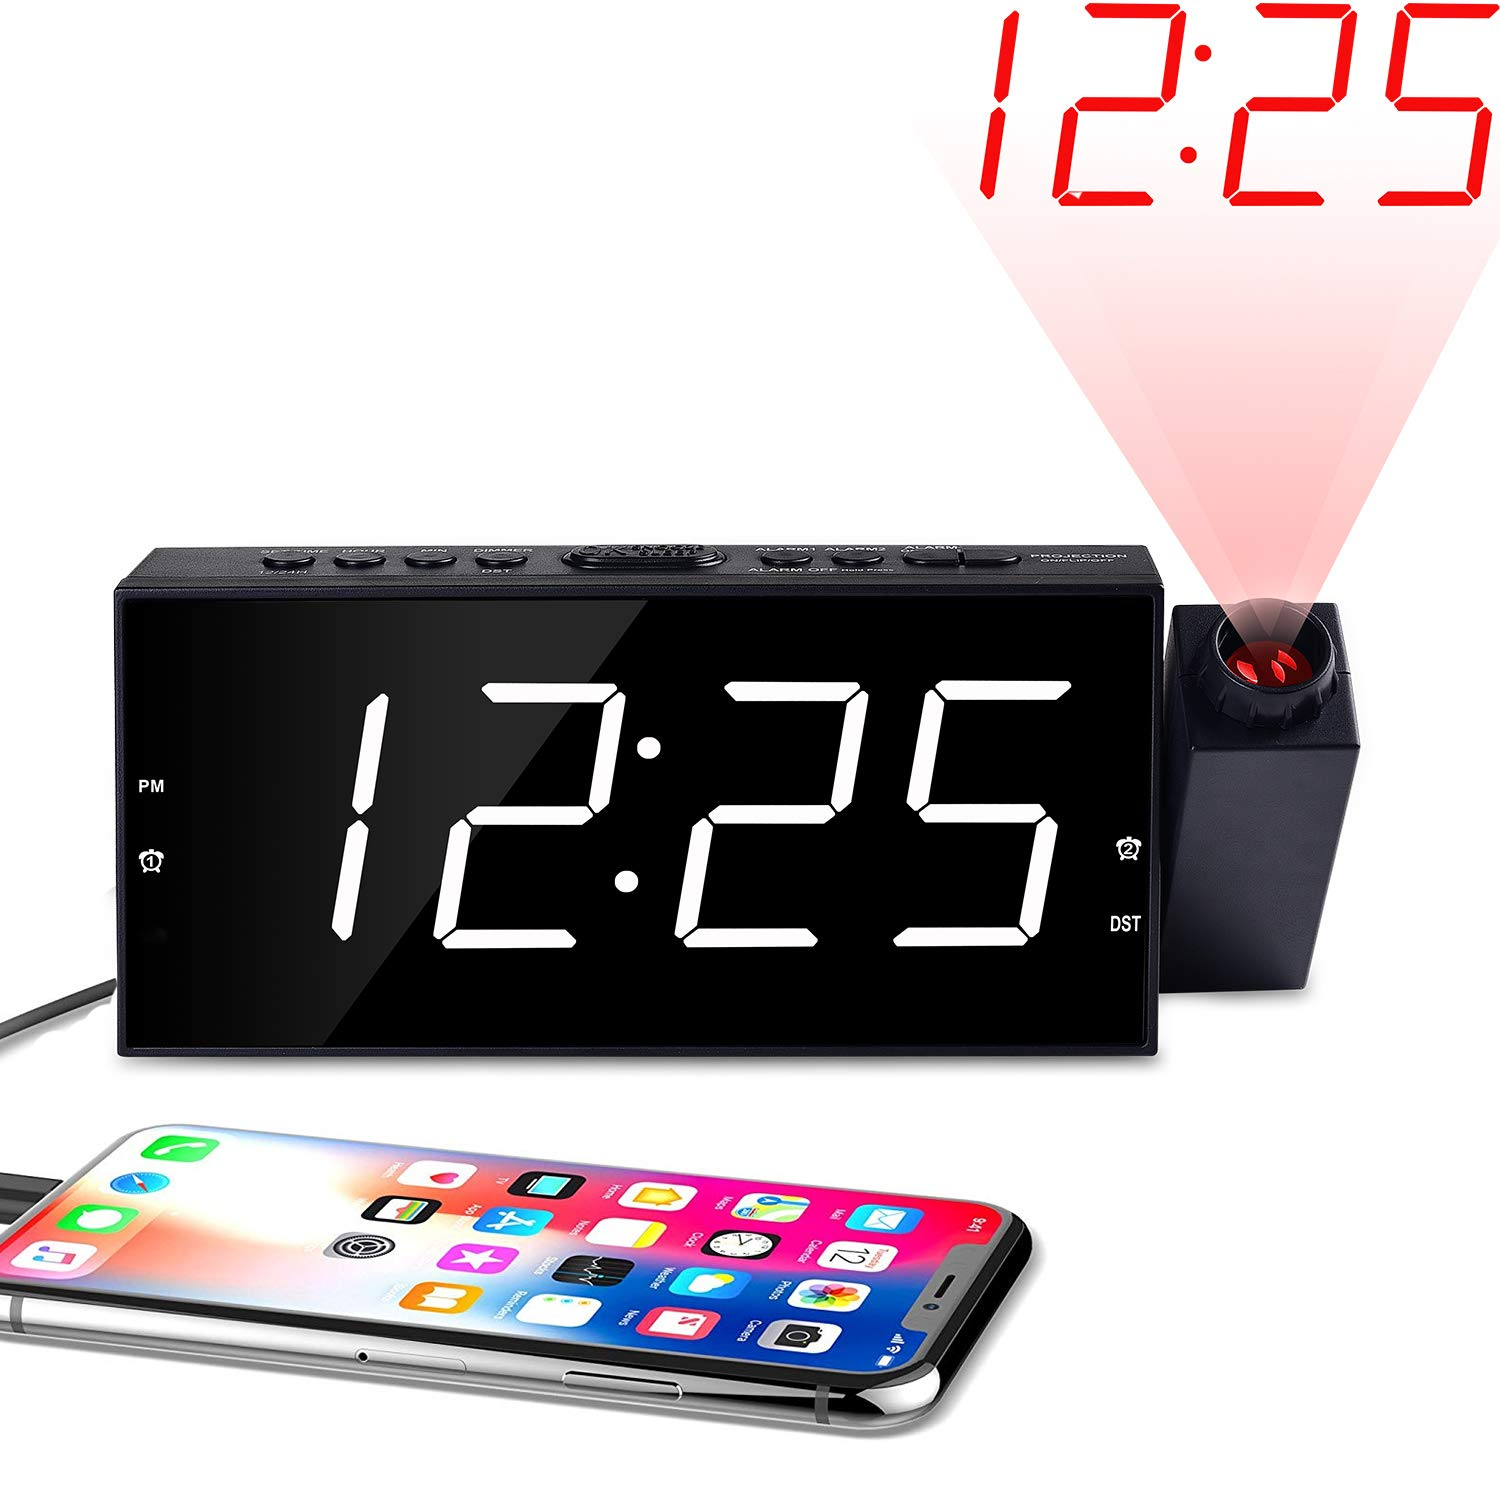 """Kitchen 7/"""" LED Digital Desk//Shelf Clock with Dimmer OnLyee Projection Ceiling Wall Clock USB Charging Kids AC Powered and Battery Backup for Bedroom Alarm Clock"""